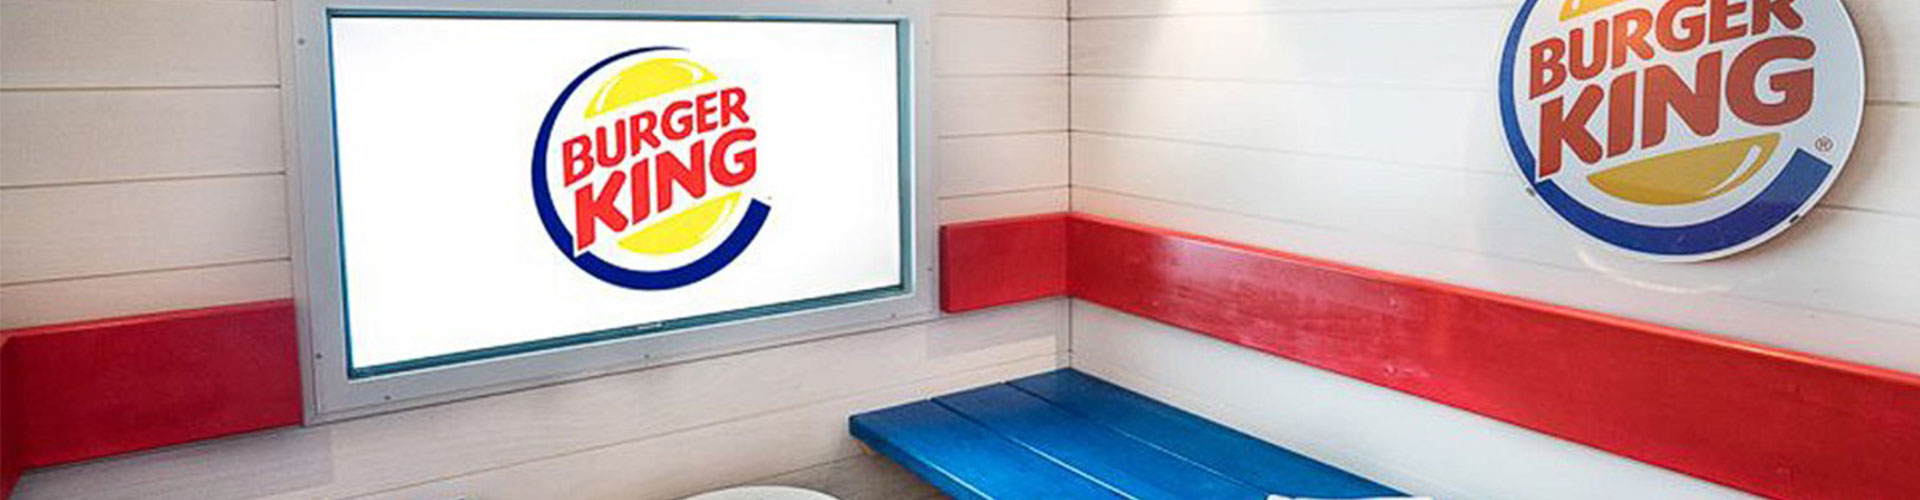 "Now you can ""sauna your way"" at a Burger King!"